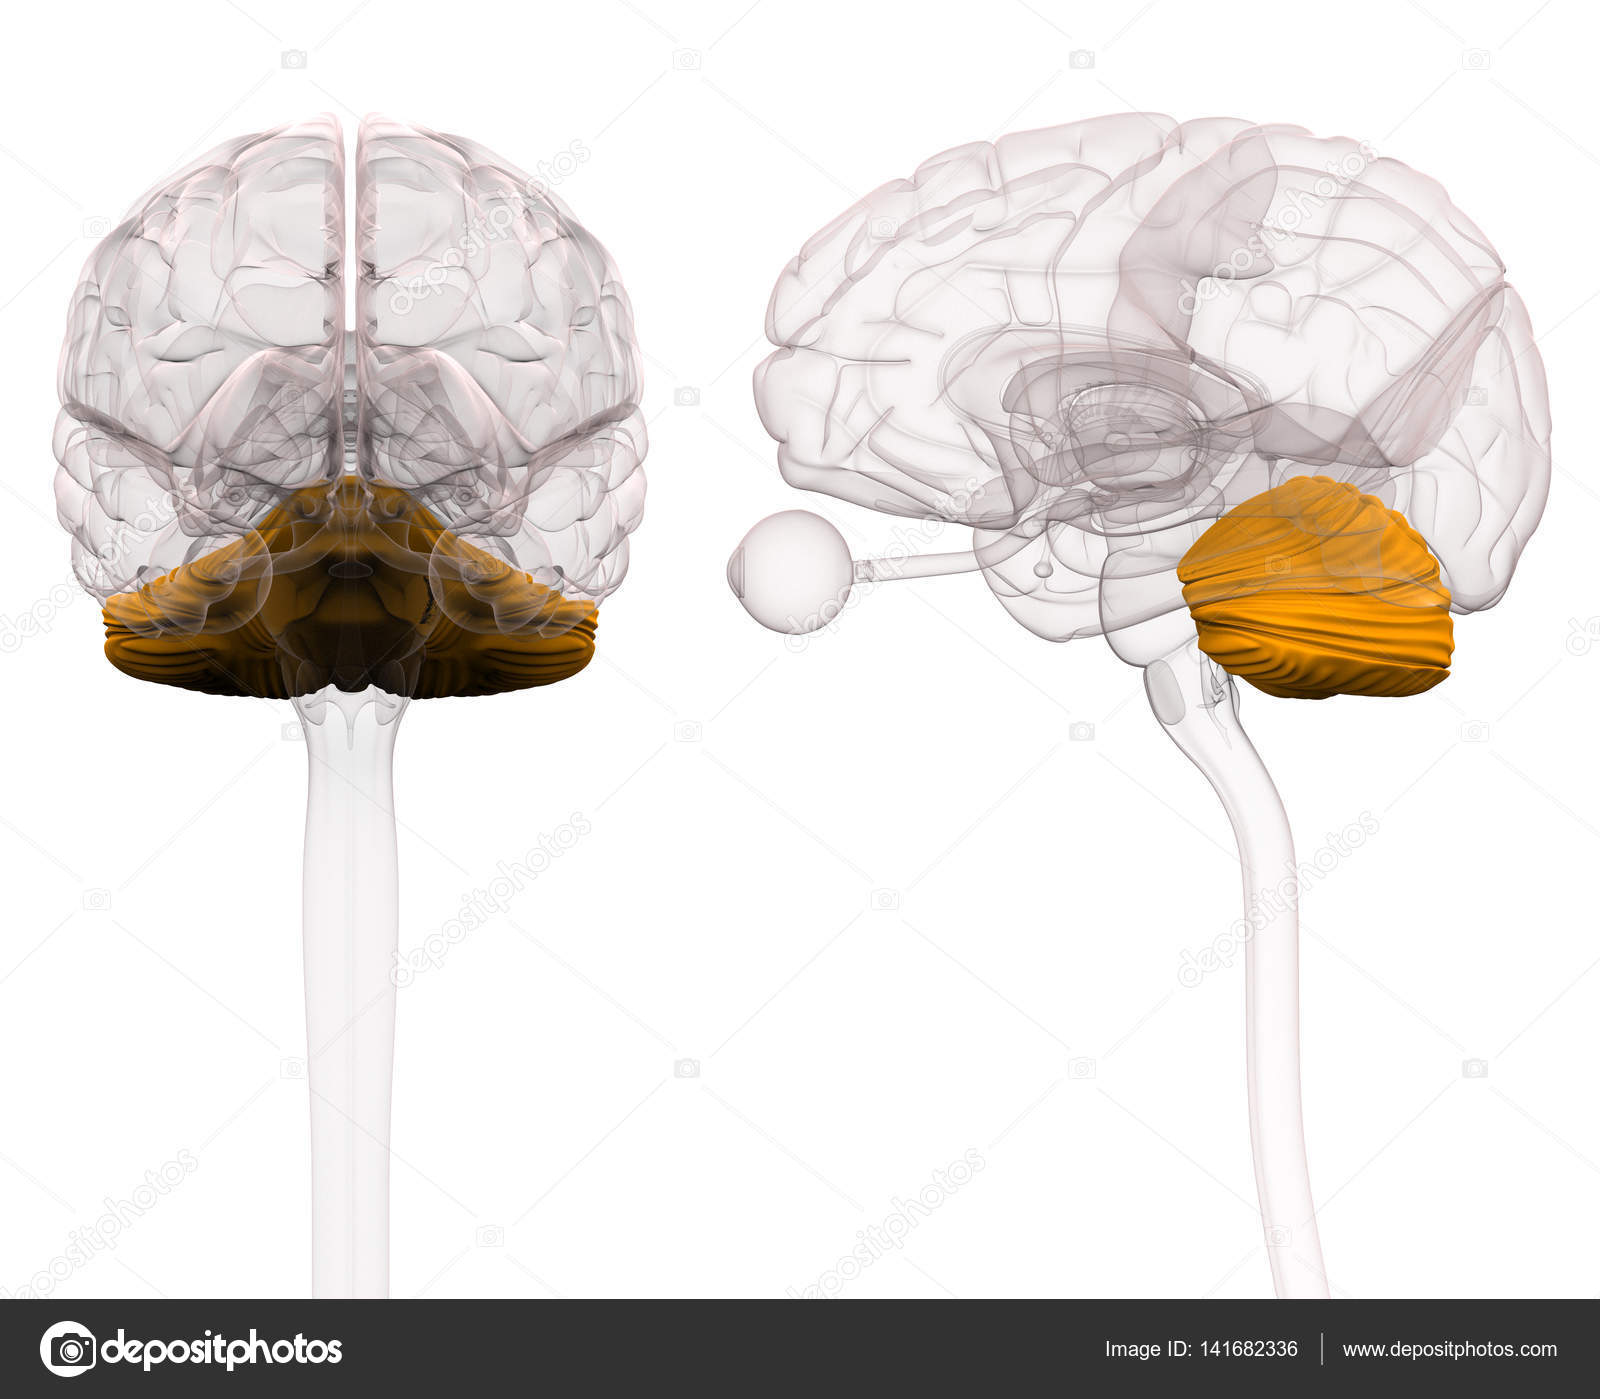 Anatomie des Gehirns Kleinhirn - 3D-Illustration — Stockfoto ...